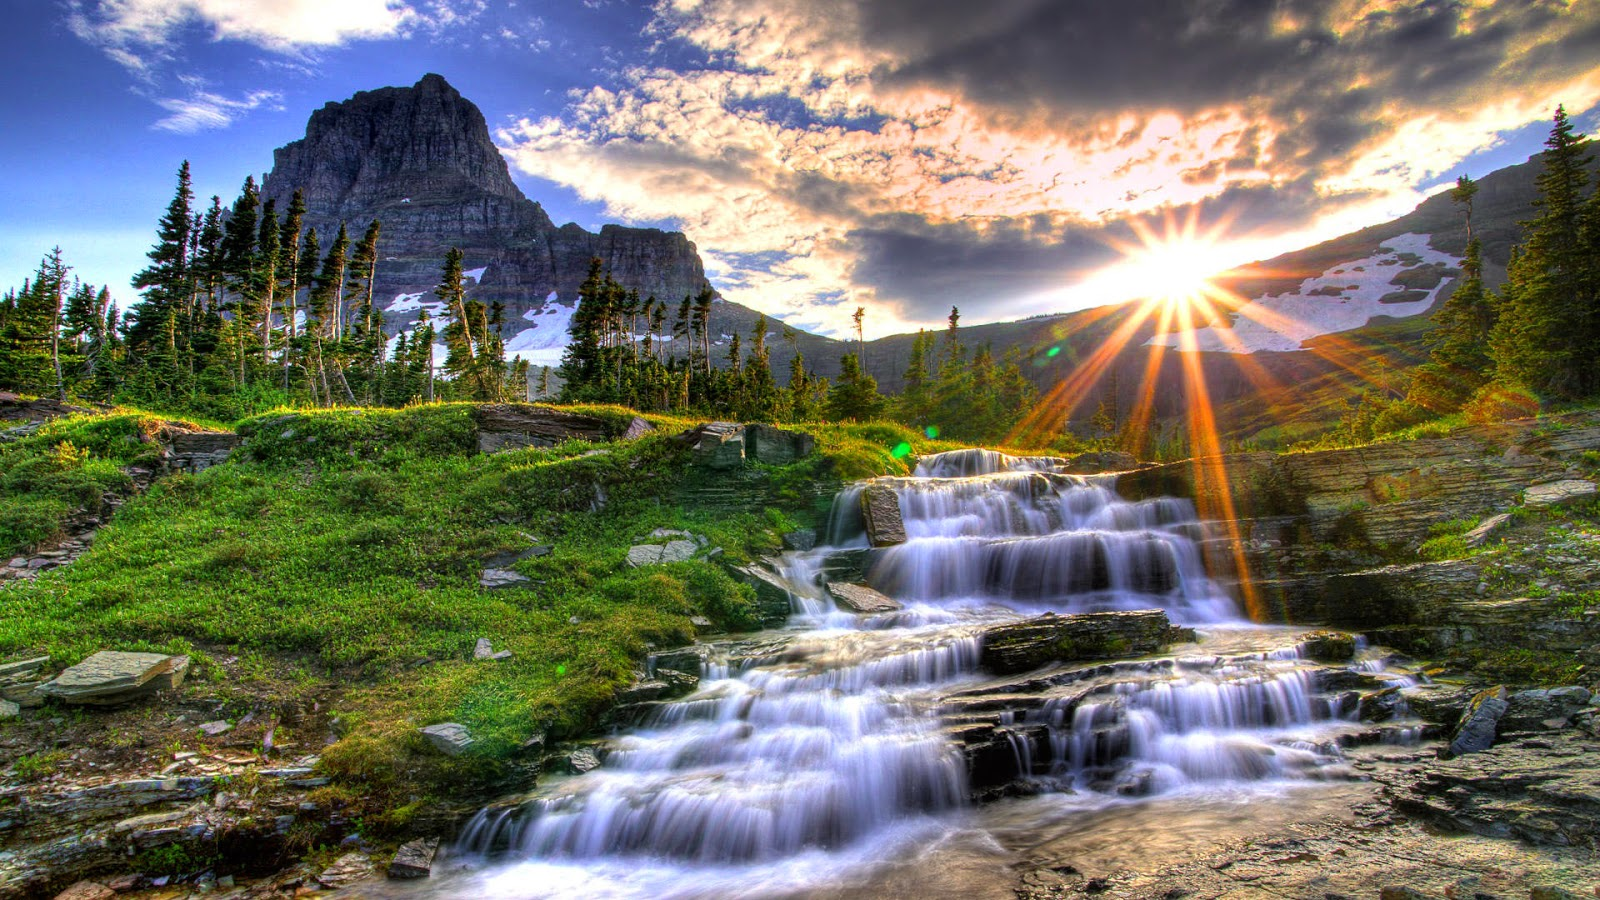 Waterfall High quality hd wallpaper Free download